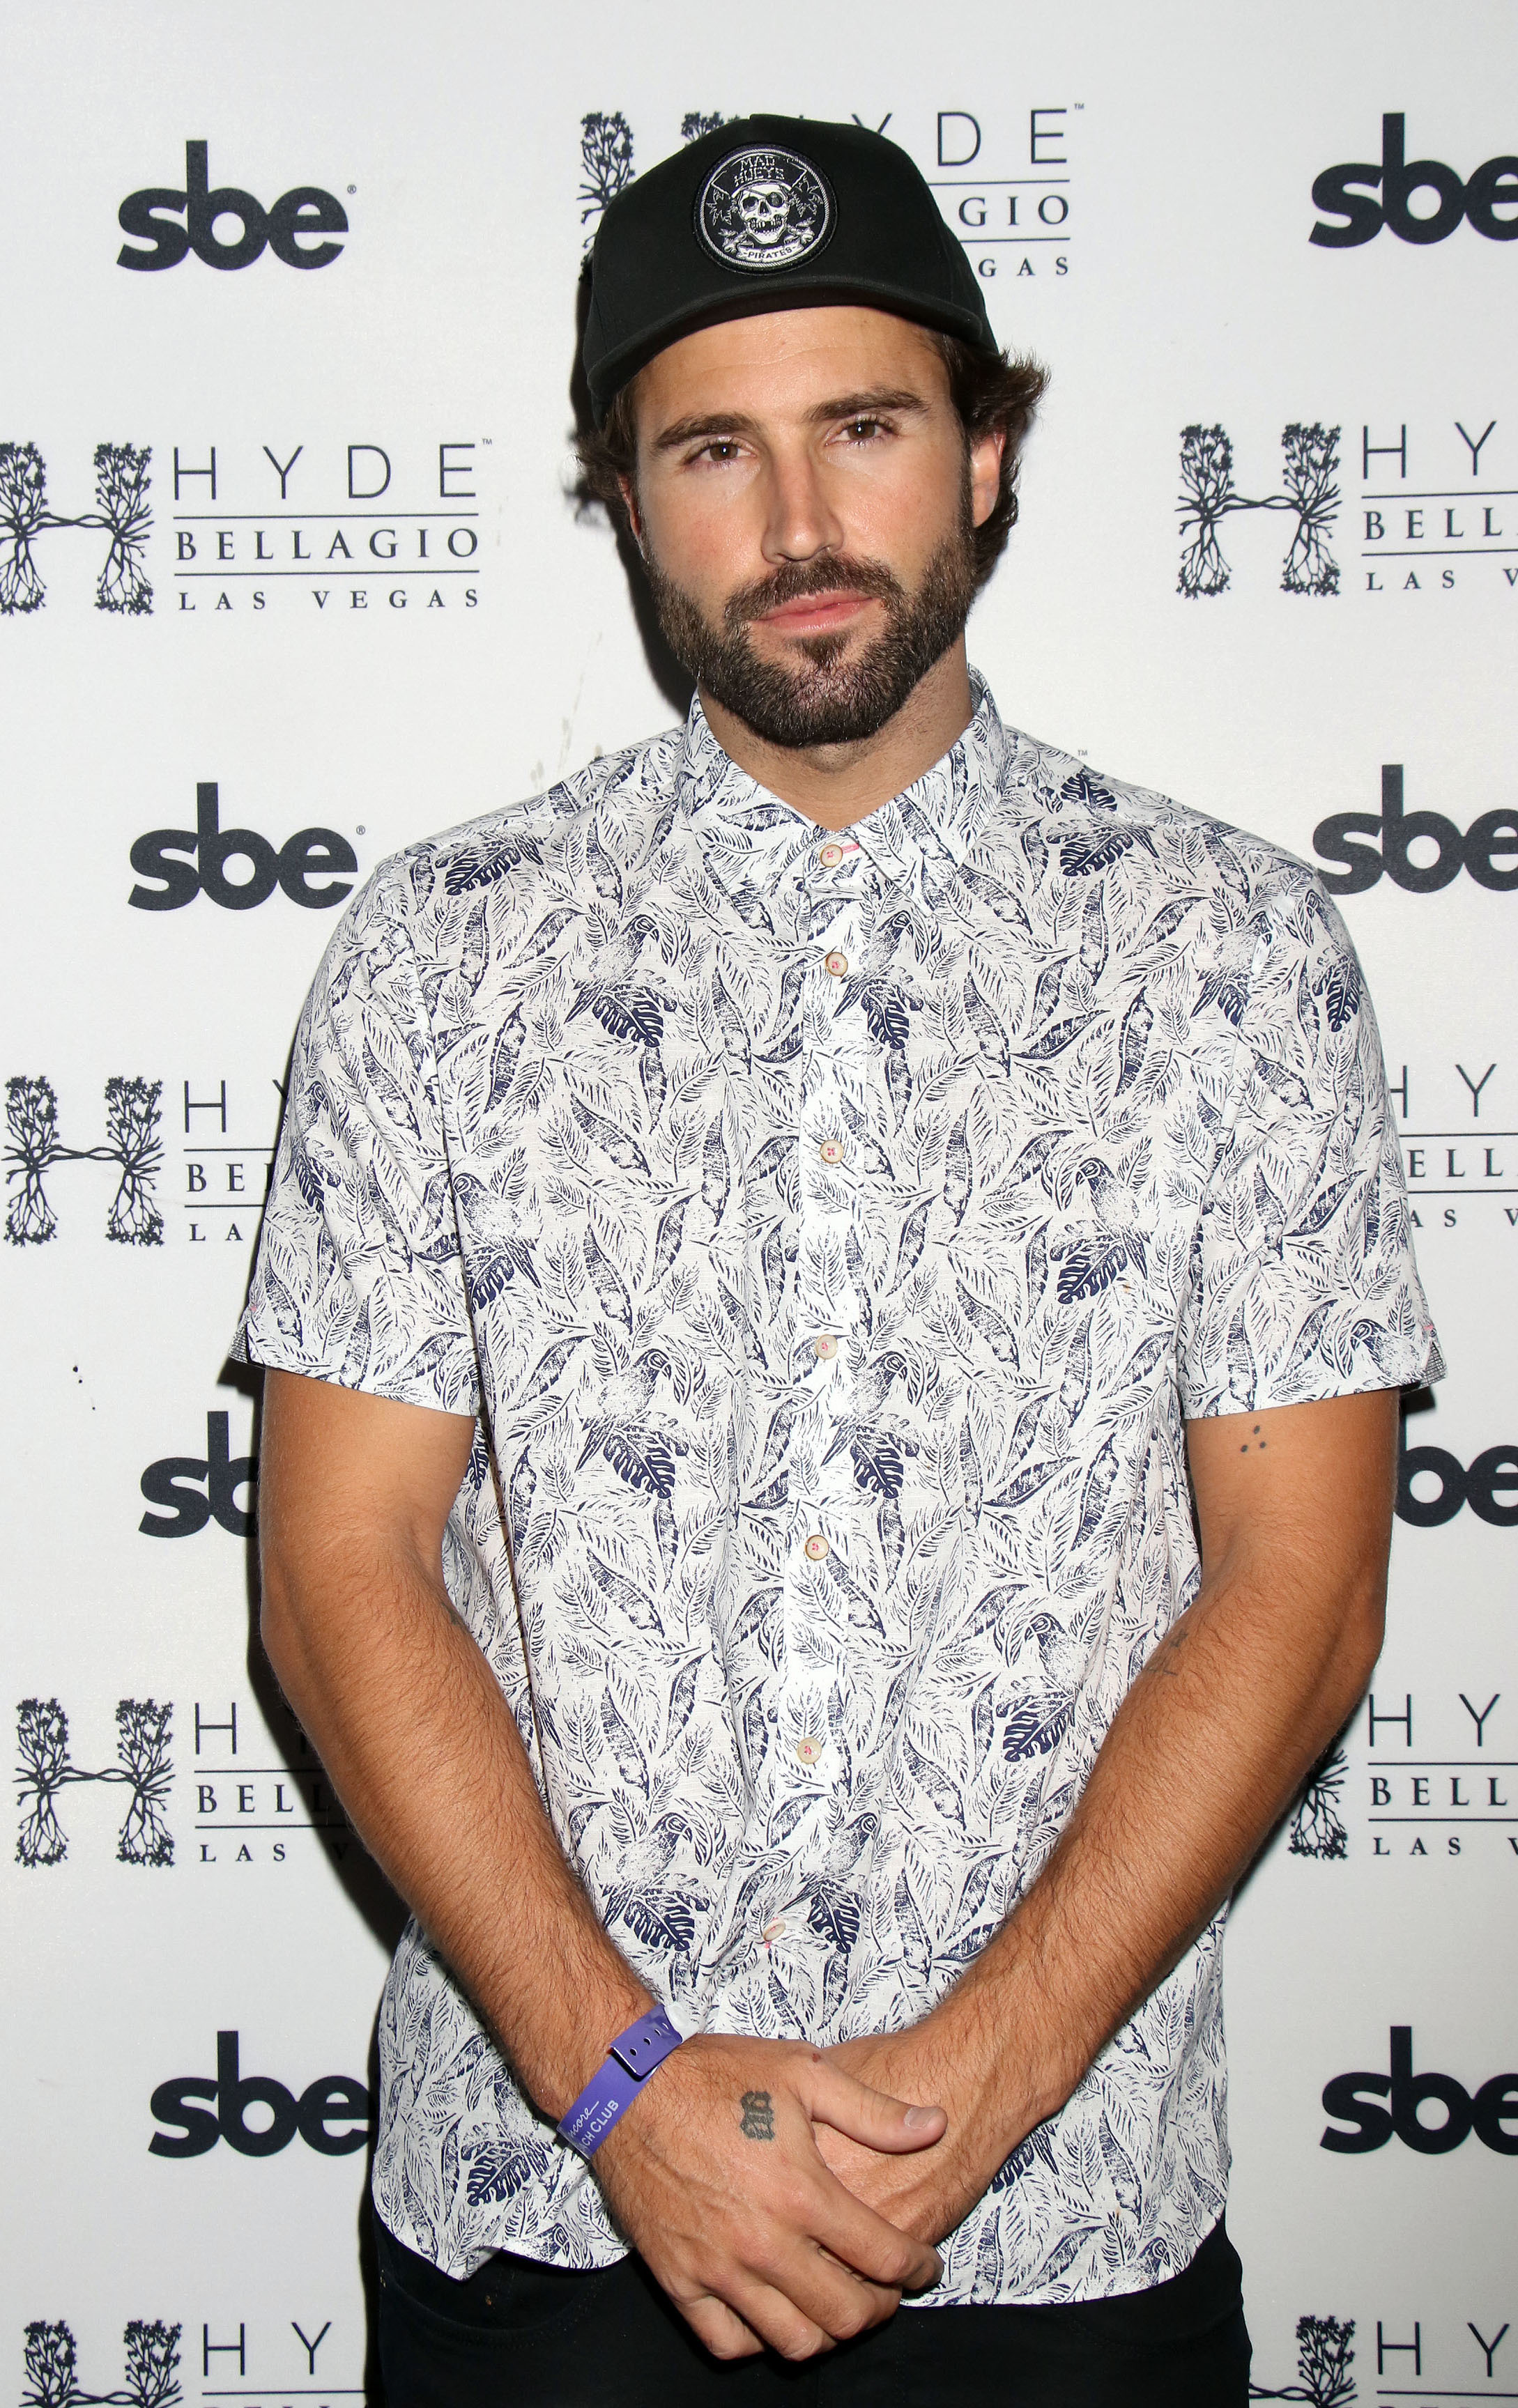 Brody Jenner attends Memorial Day Weekend events at the Bellagio Hotel & Casino at Las Vegas on May 27, 2017.